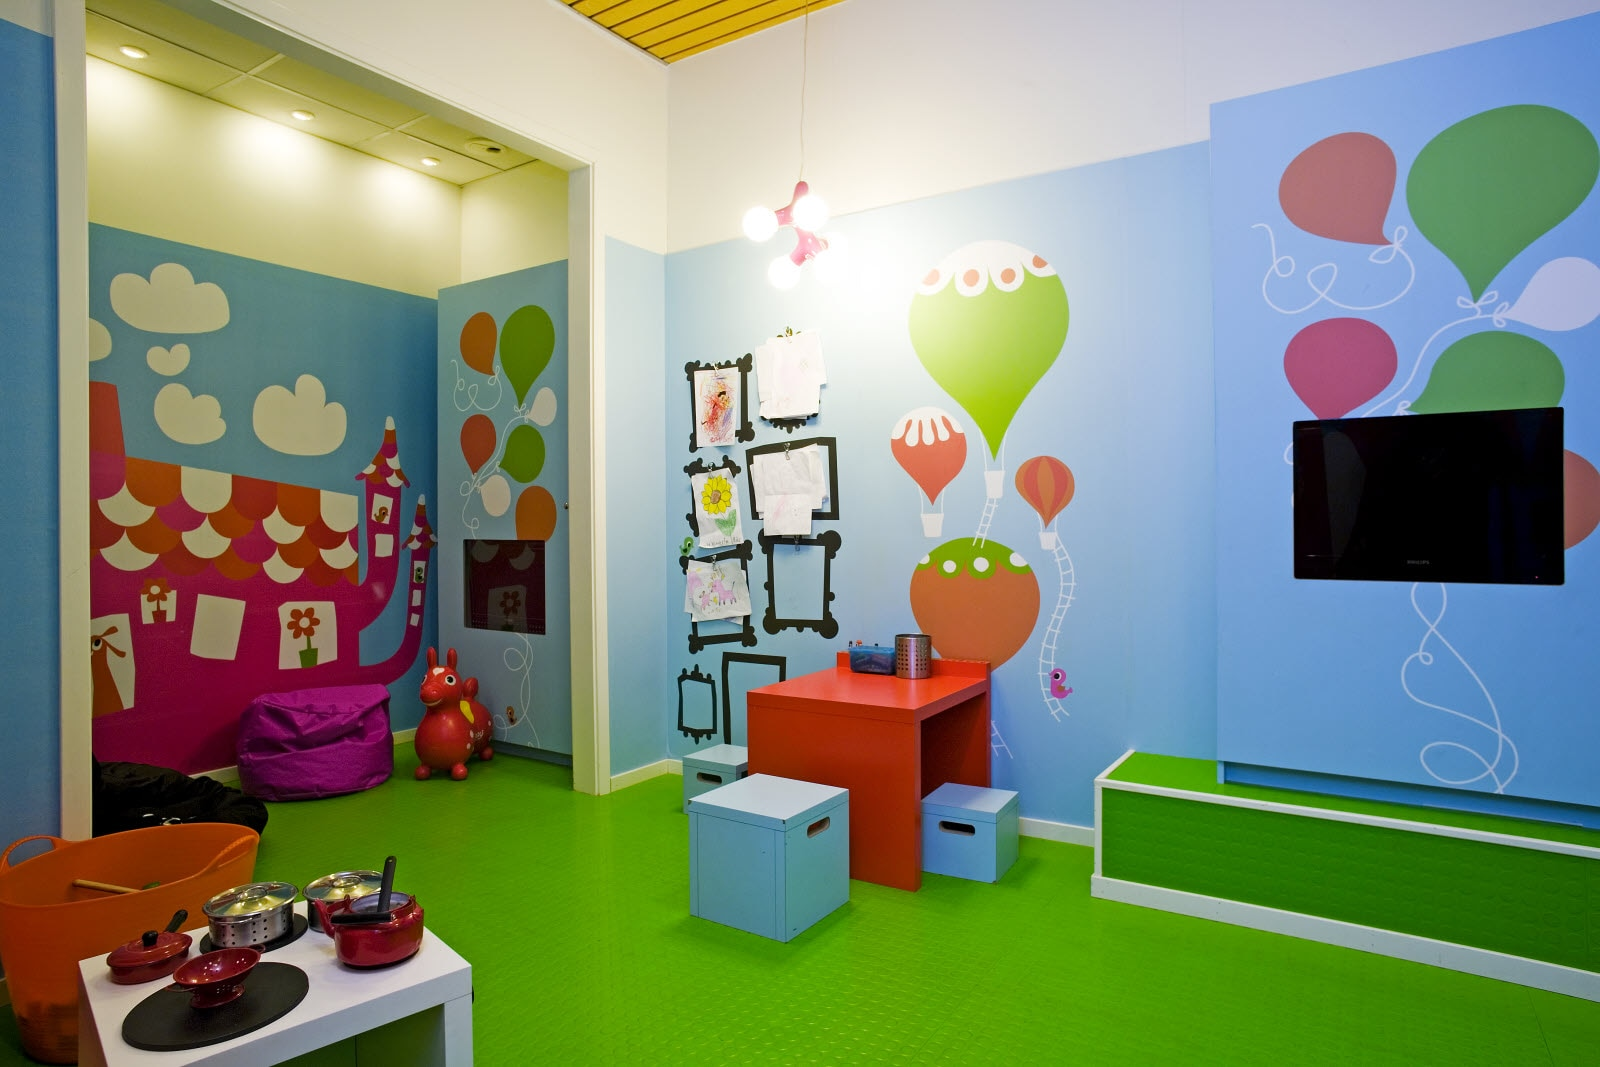 Scandic Infra City, play room, kids area